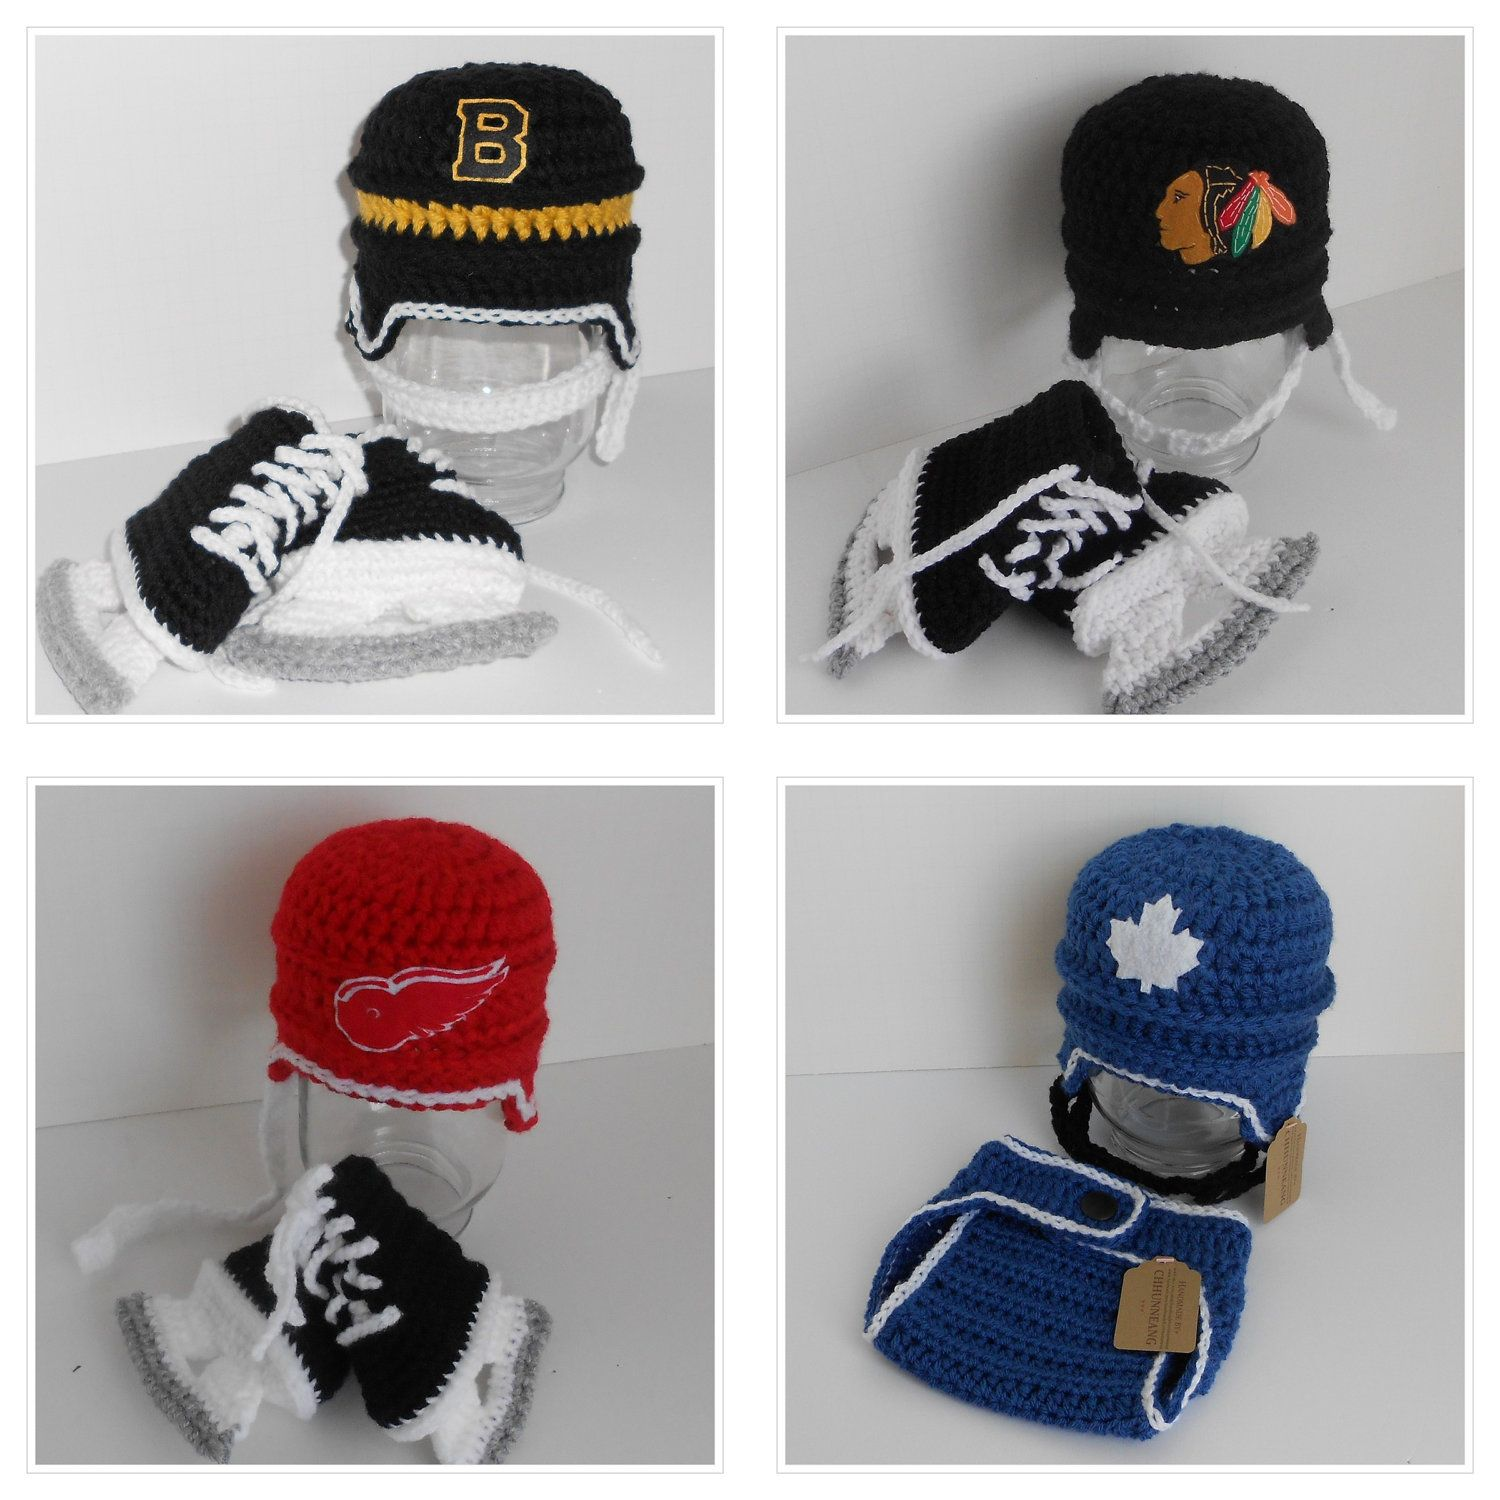 Crochet Baby Team Hockey Helmet and Skates Set. | Been there, DONE ...